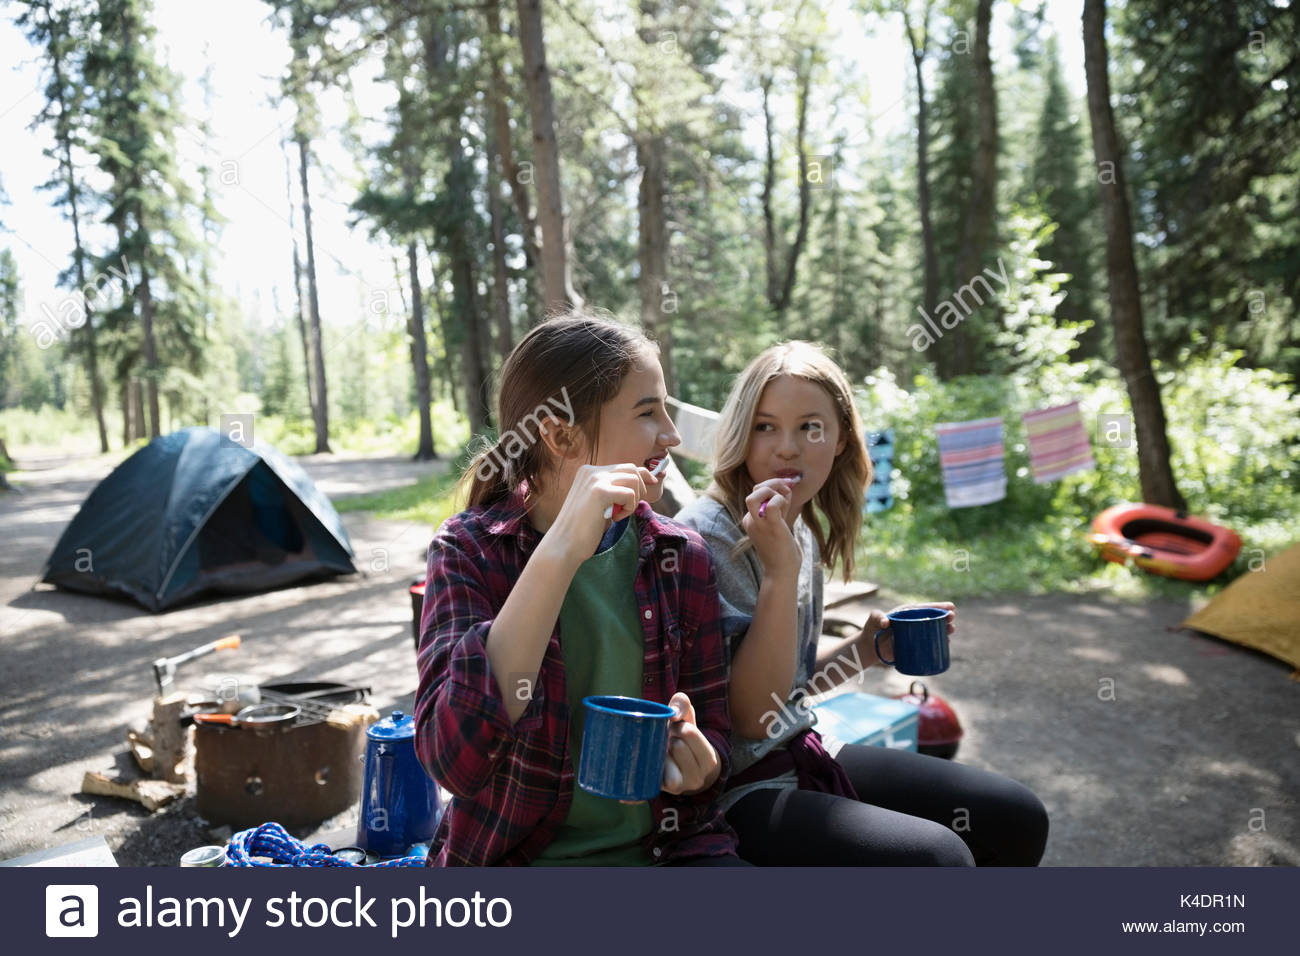 Teenage girl friends brushing teeth with toothbrushes and mugs at outdoor school campsite - Stock Image